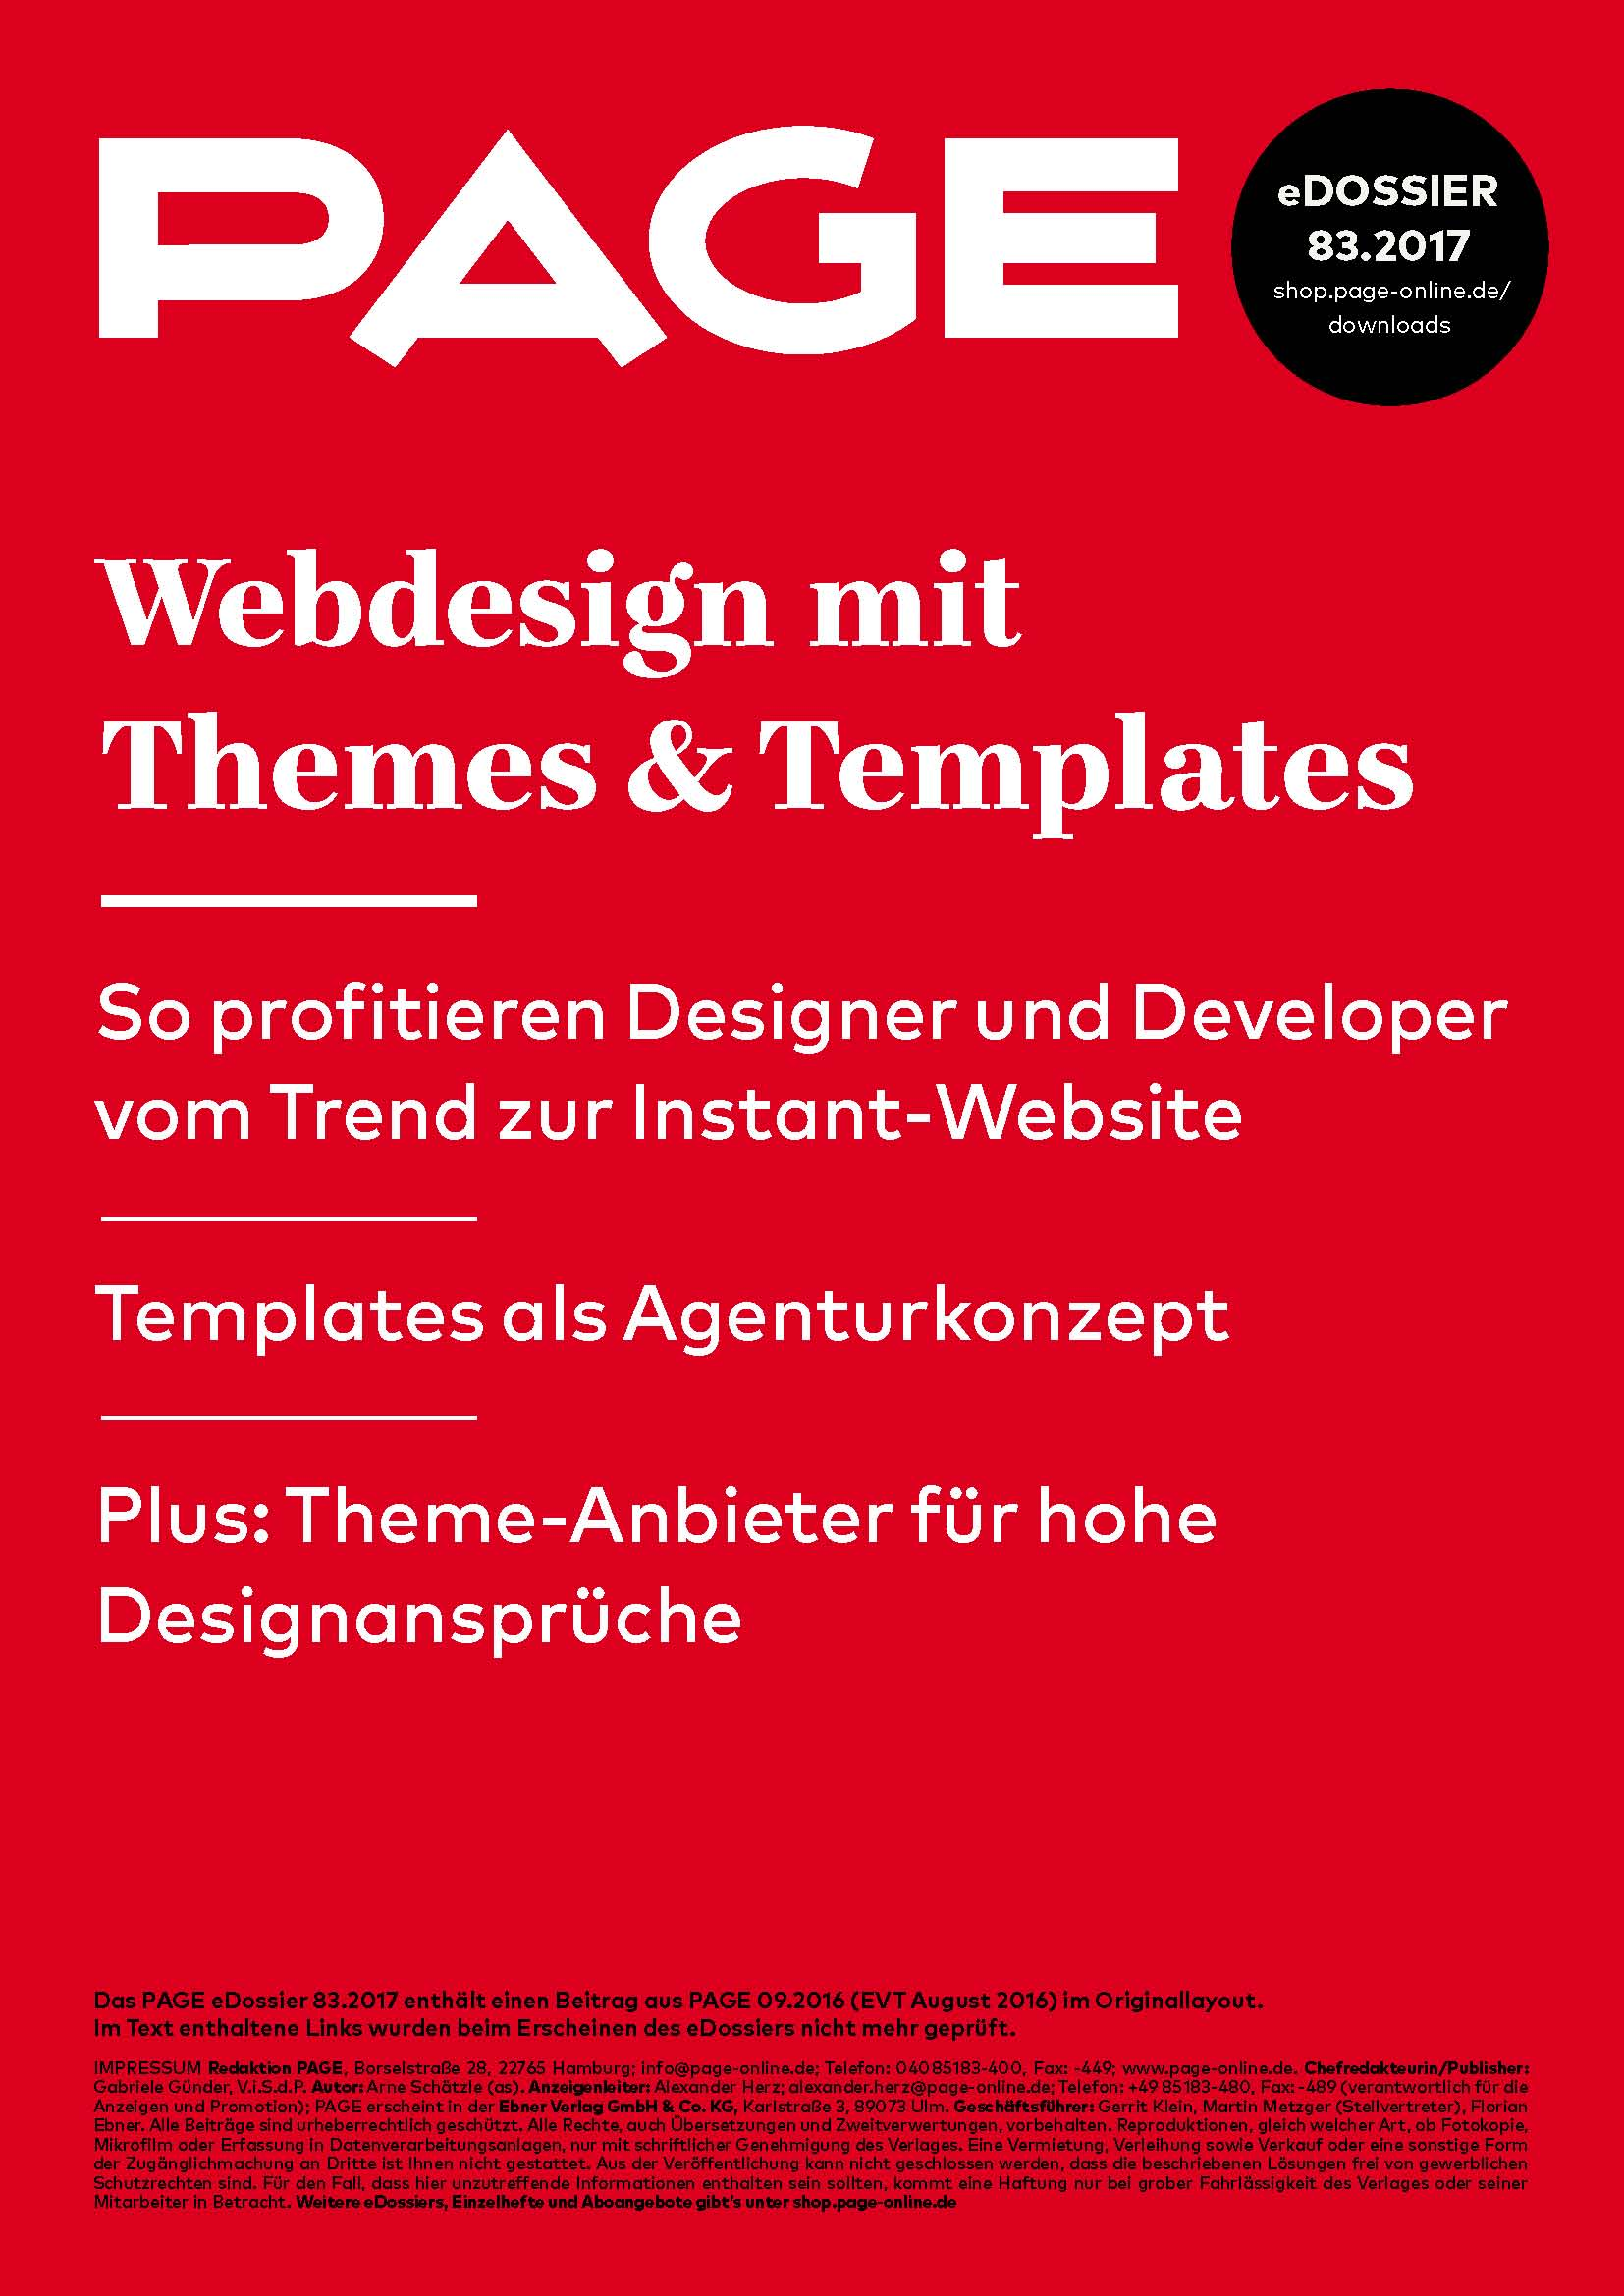 Produkt: eDossier »Webdesign mit Themes & Templates«